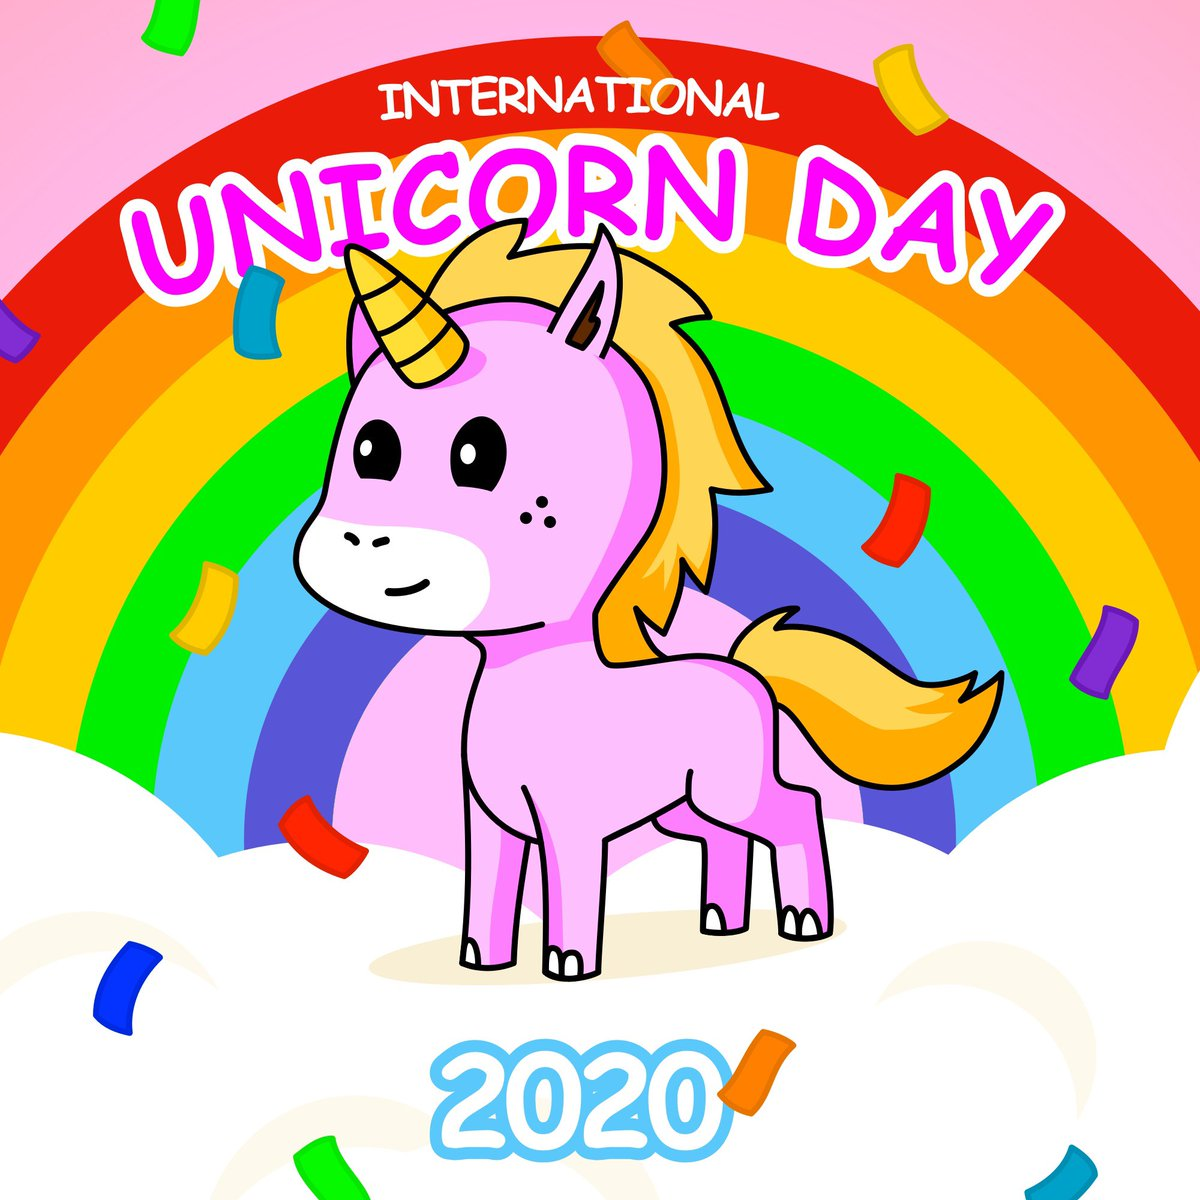 Happy International Unicorn Day! It's time to celebrate our magical friends who bring us so much happiness every day that we don't even know how to handle it. Woohoo! 🦄 🌈😀✨ #cornify #unicorns #younicorns #rainbow #internationalunicornday #party